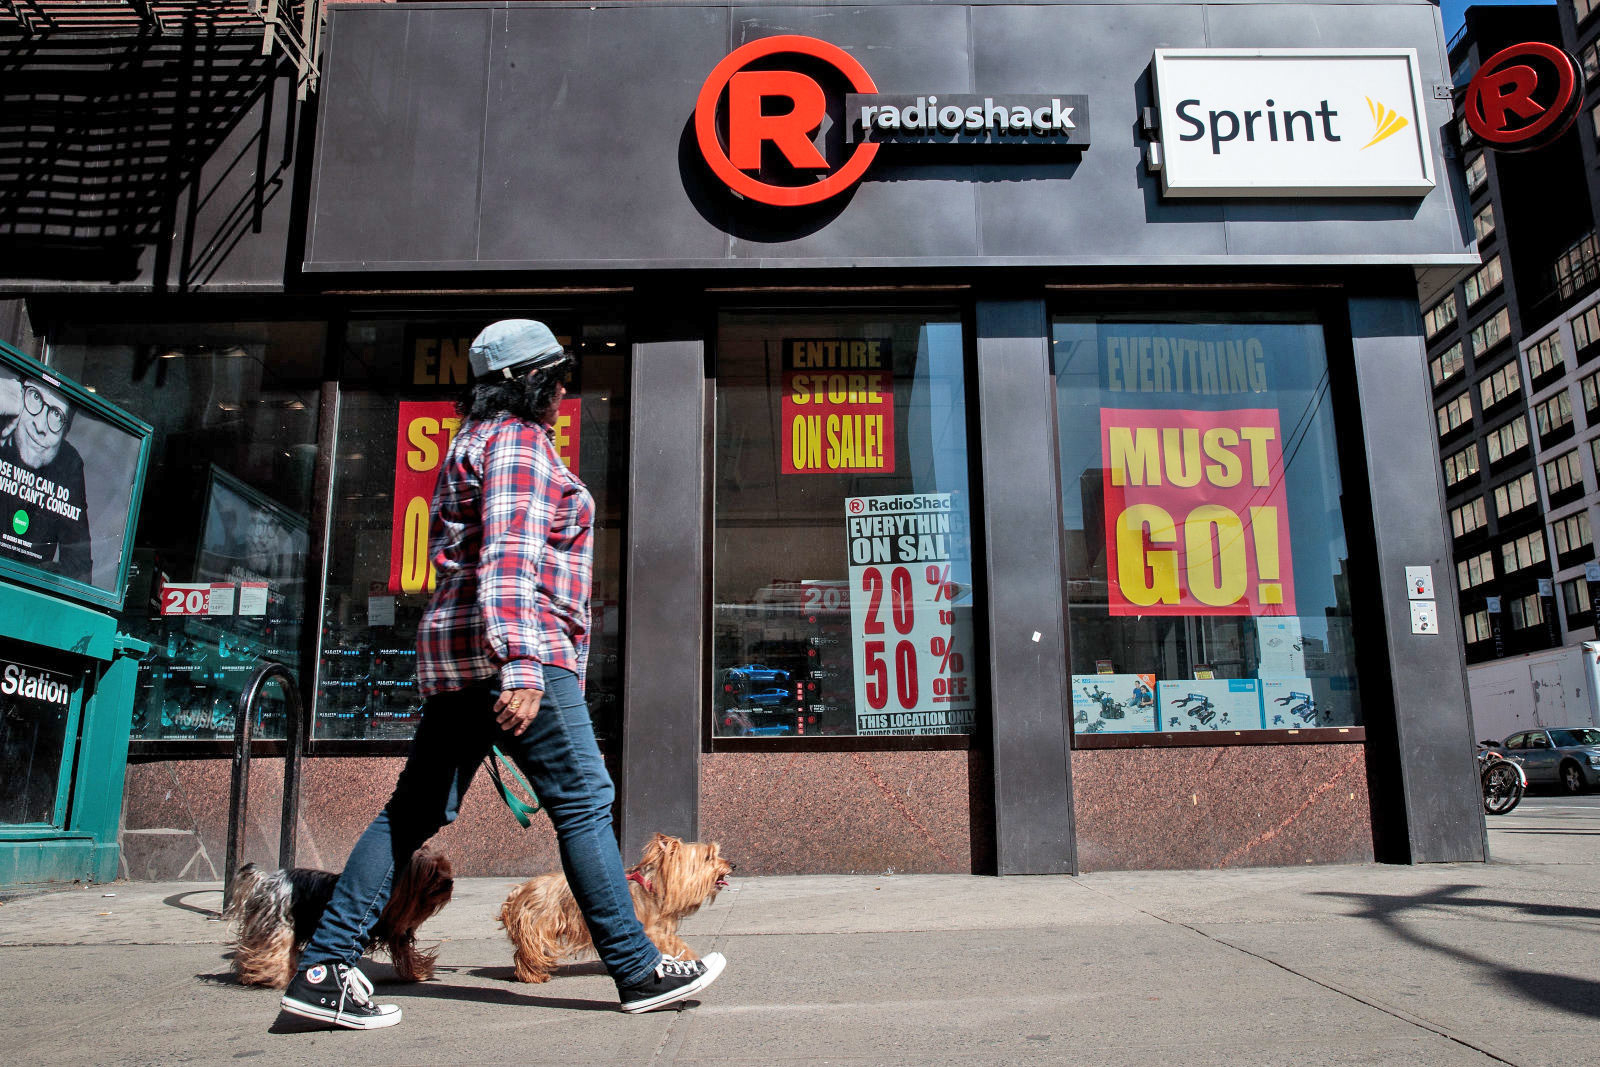 Lawsuit Blames Sprint for RadioShack Bankruptcy!